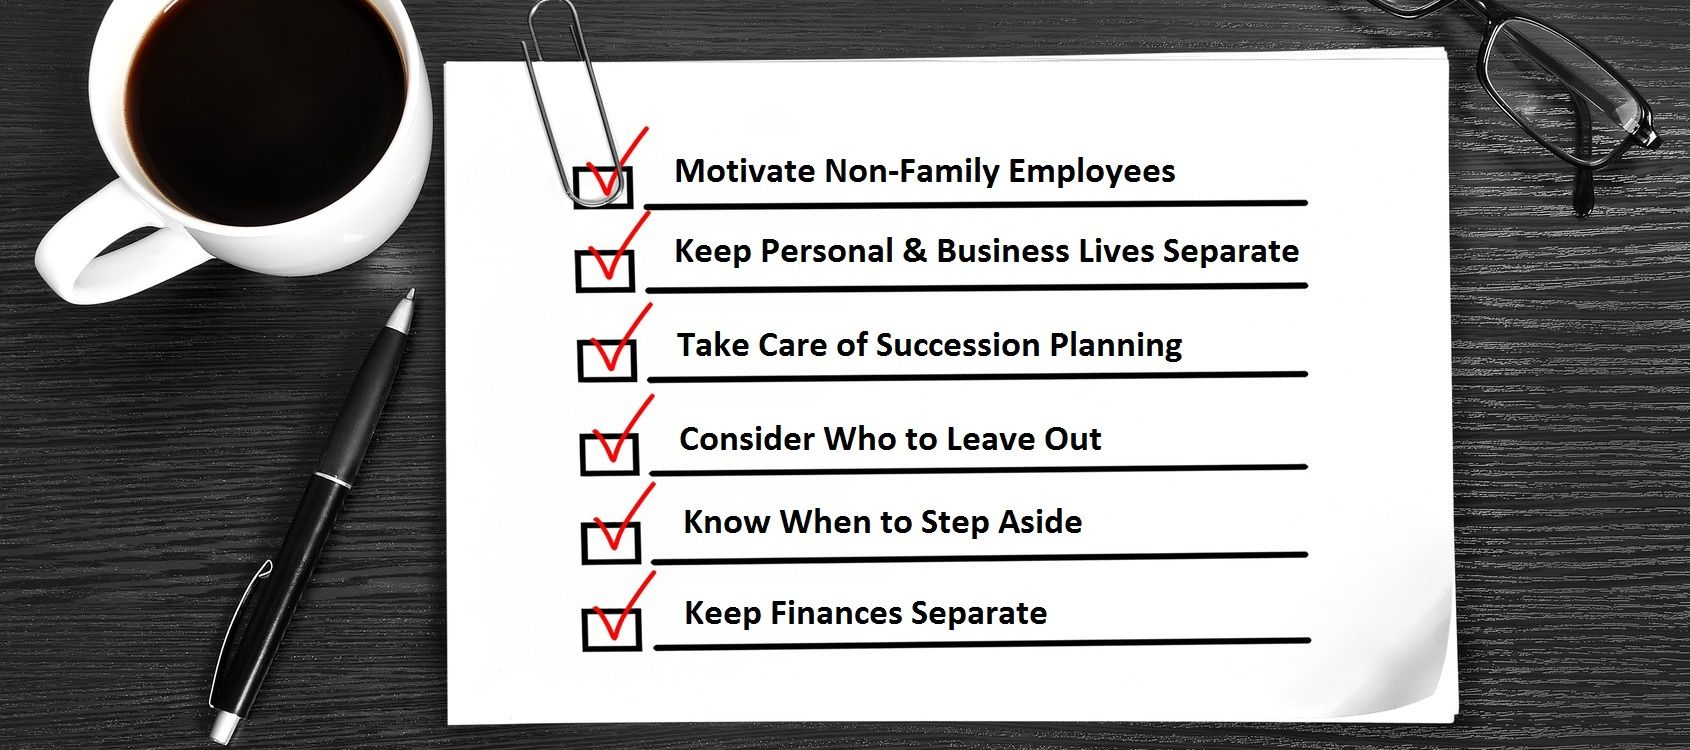 Starting a Family Business? Avoid These 6 Common Mistakes